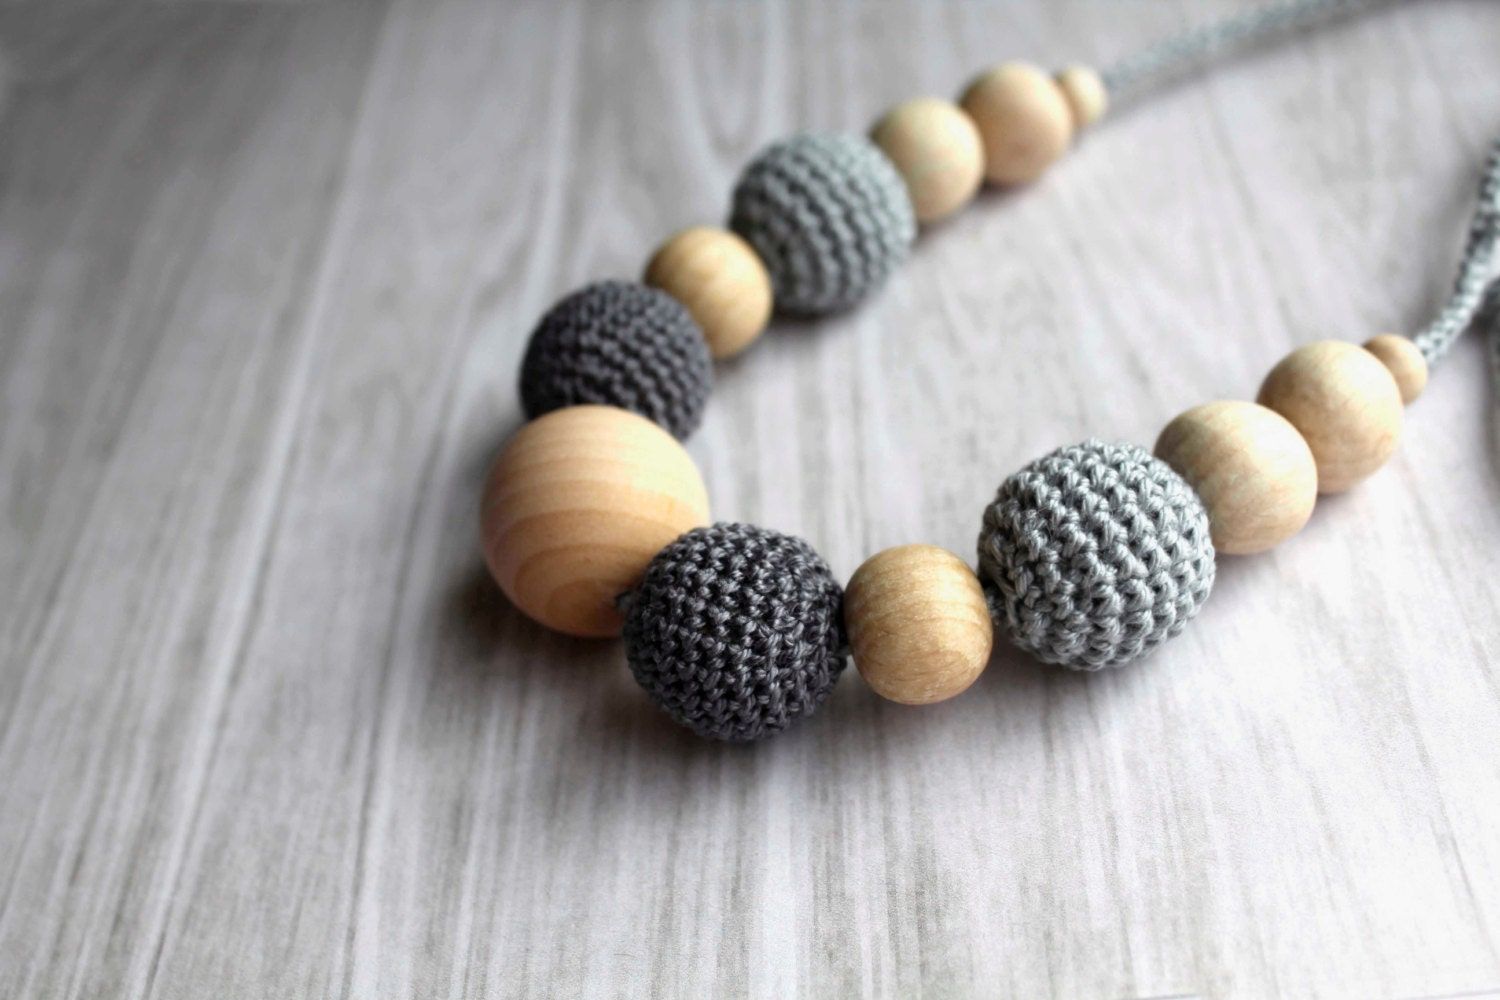 Grey Crochet Nursing Necklace - Breastfeeding Necklace - Teething necklace with crochet beads - designML